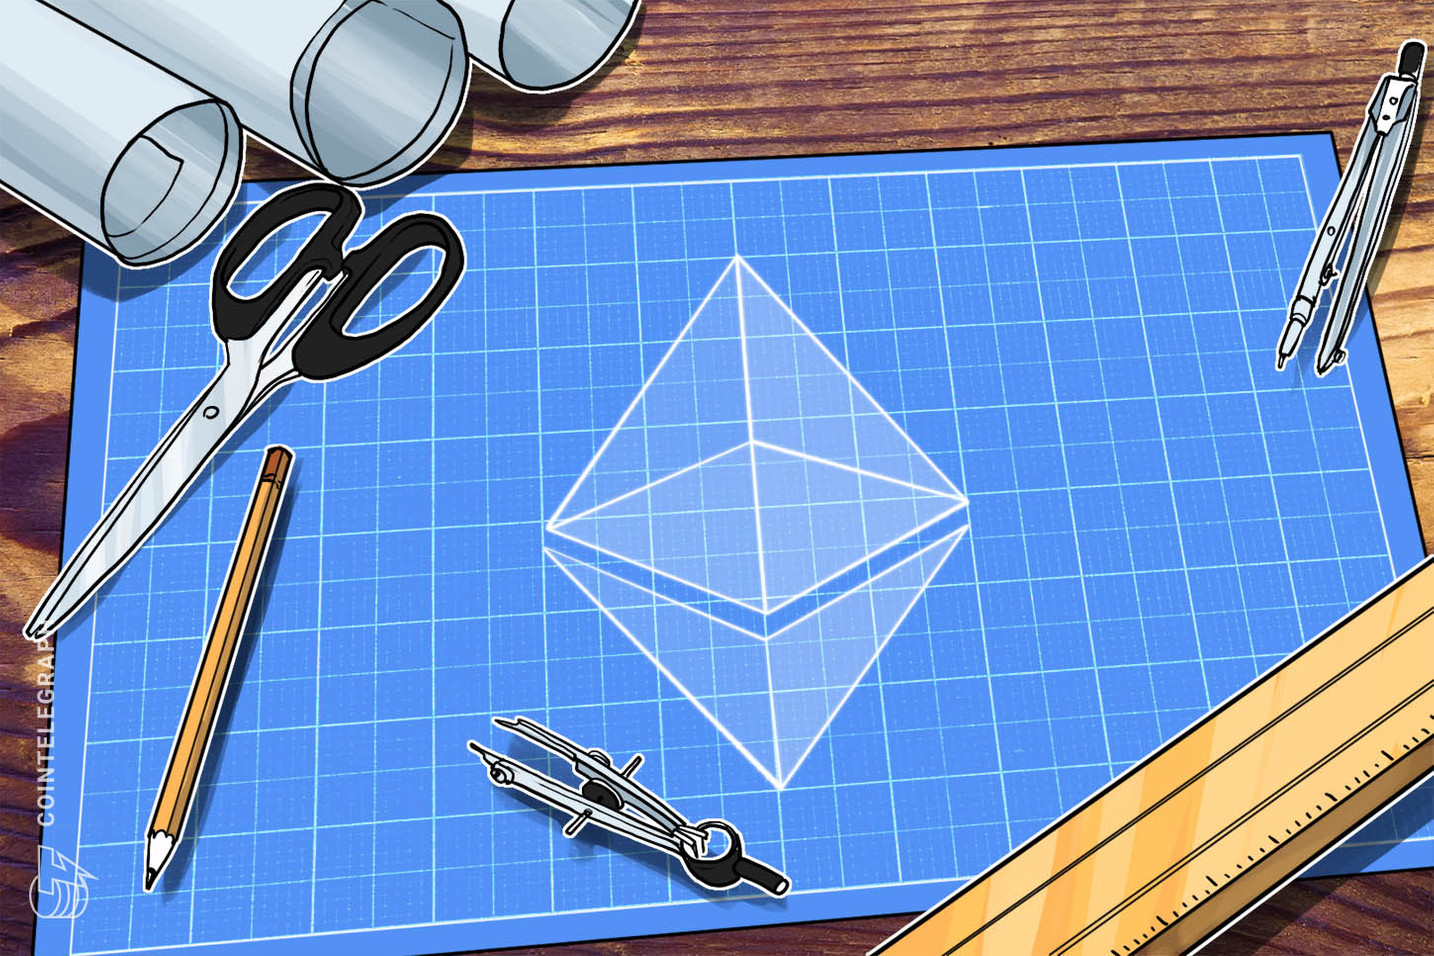 Consensys Launches ETH Blockchain, DApp Developer Job Kit to Help Hopefuls Enter Market